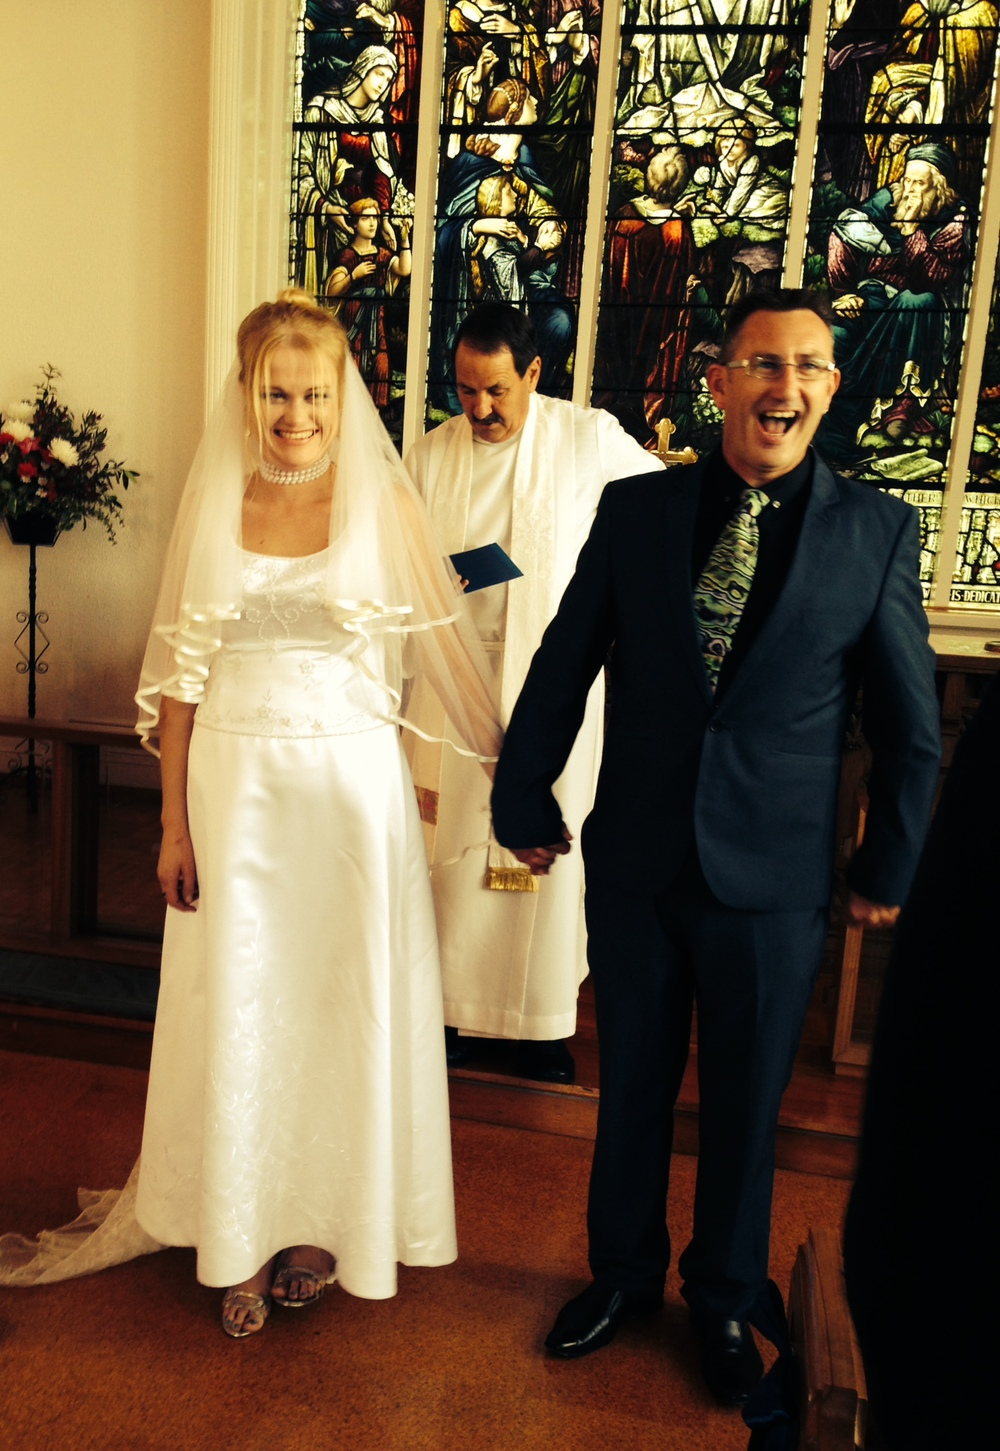 Joanne and Jason Wedding June 2014.jpg